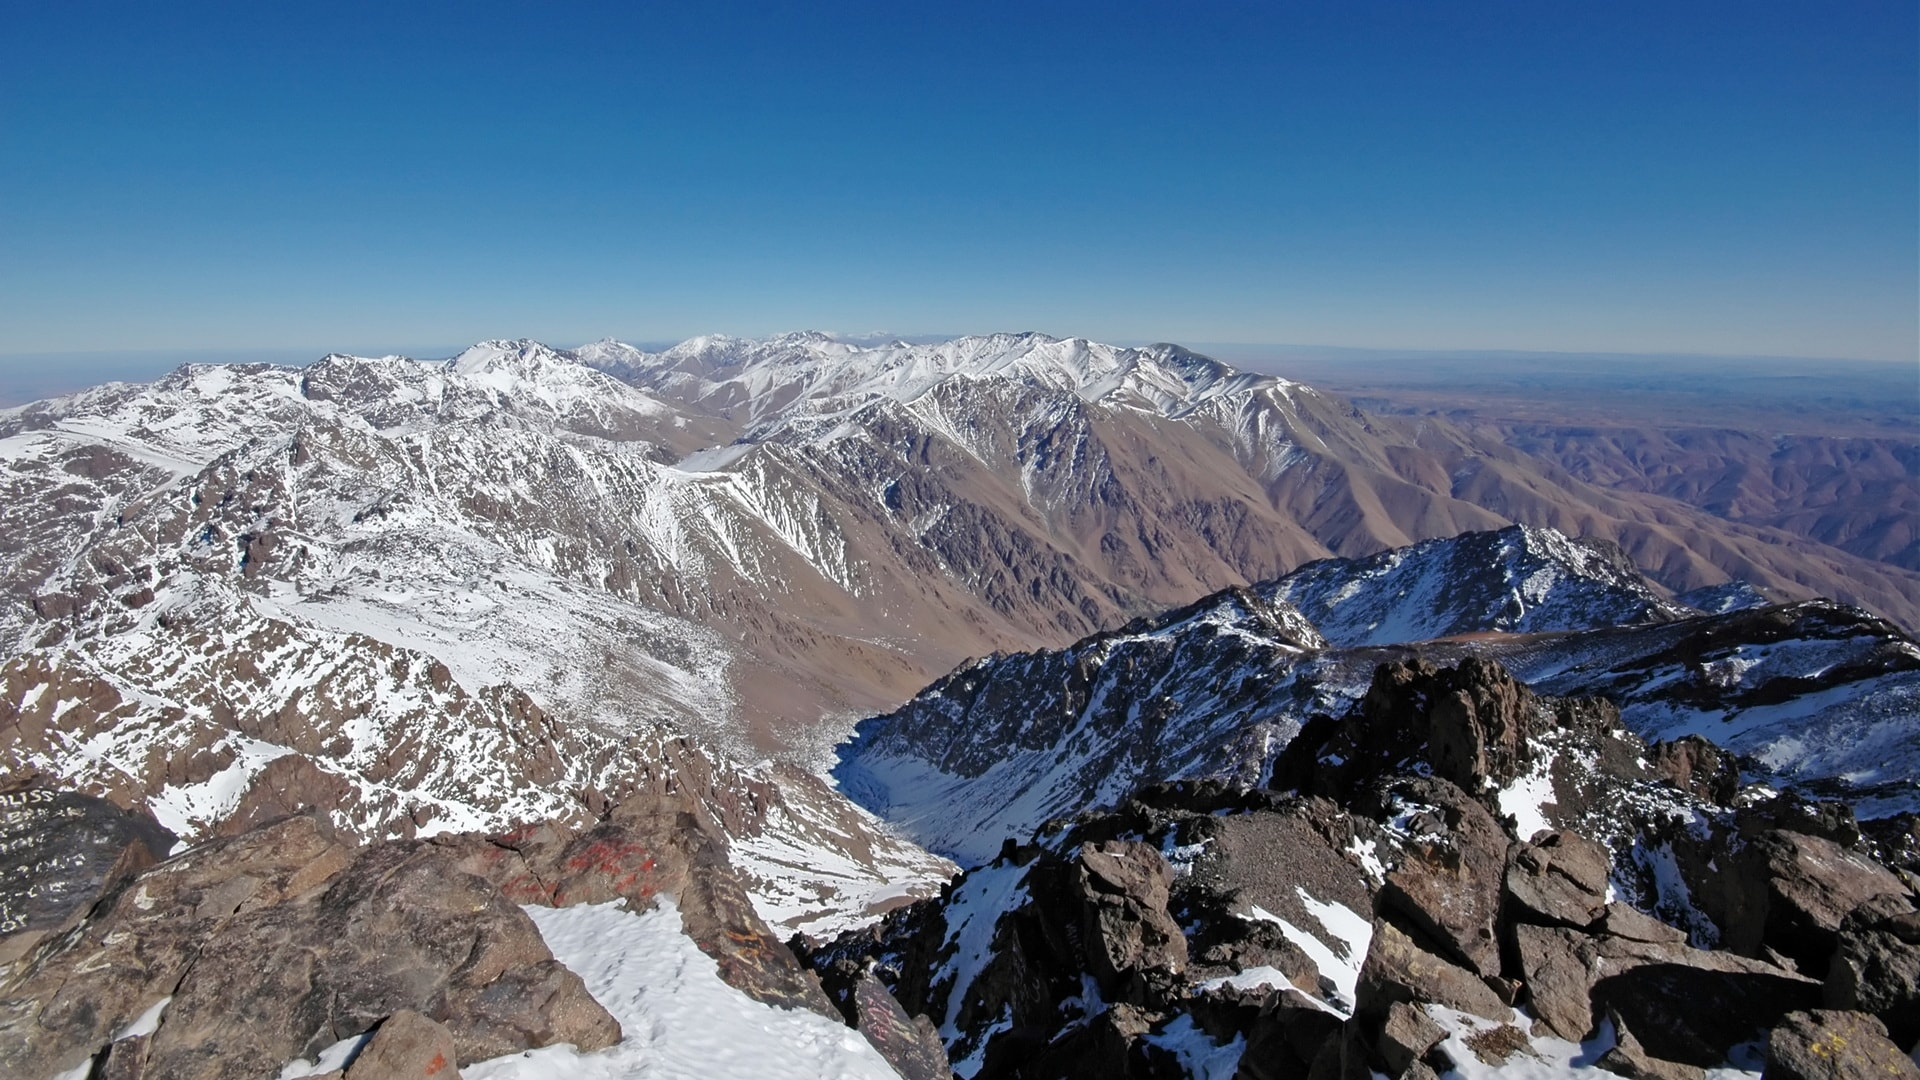 pathfinders treks - exclusive toubkal climb and berber villages 6 day trek